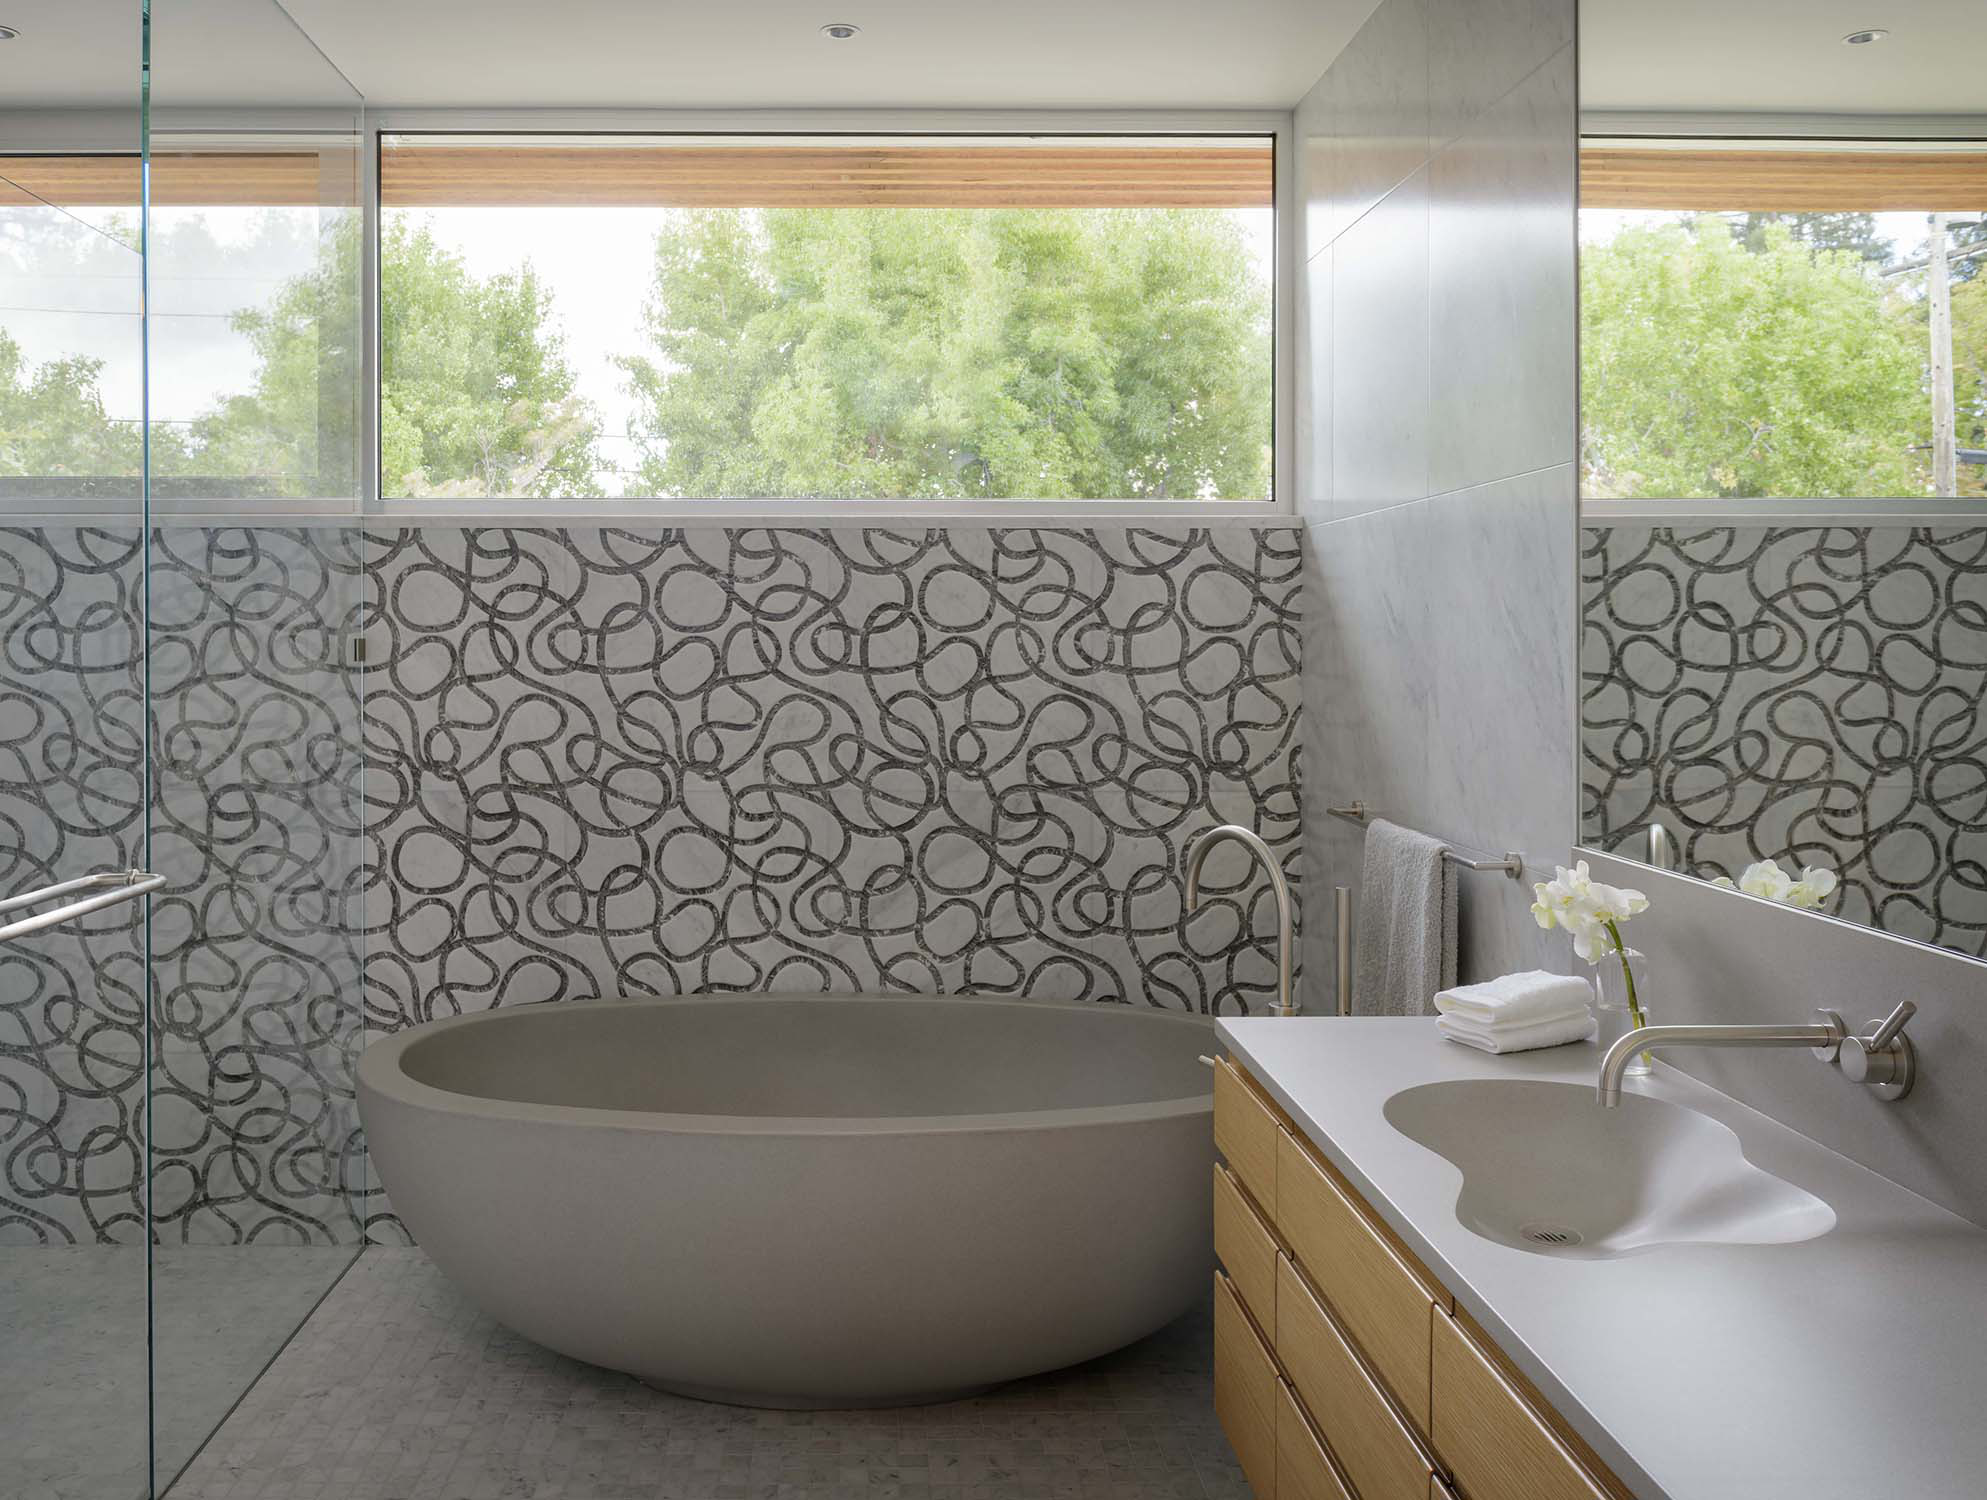 Freestanding concrete tub with carved marble wall tile by Verner Architects